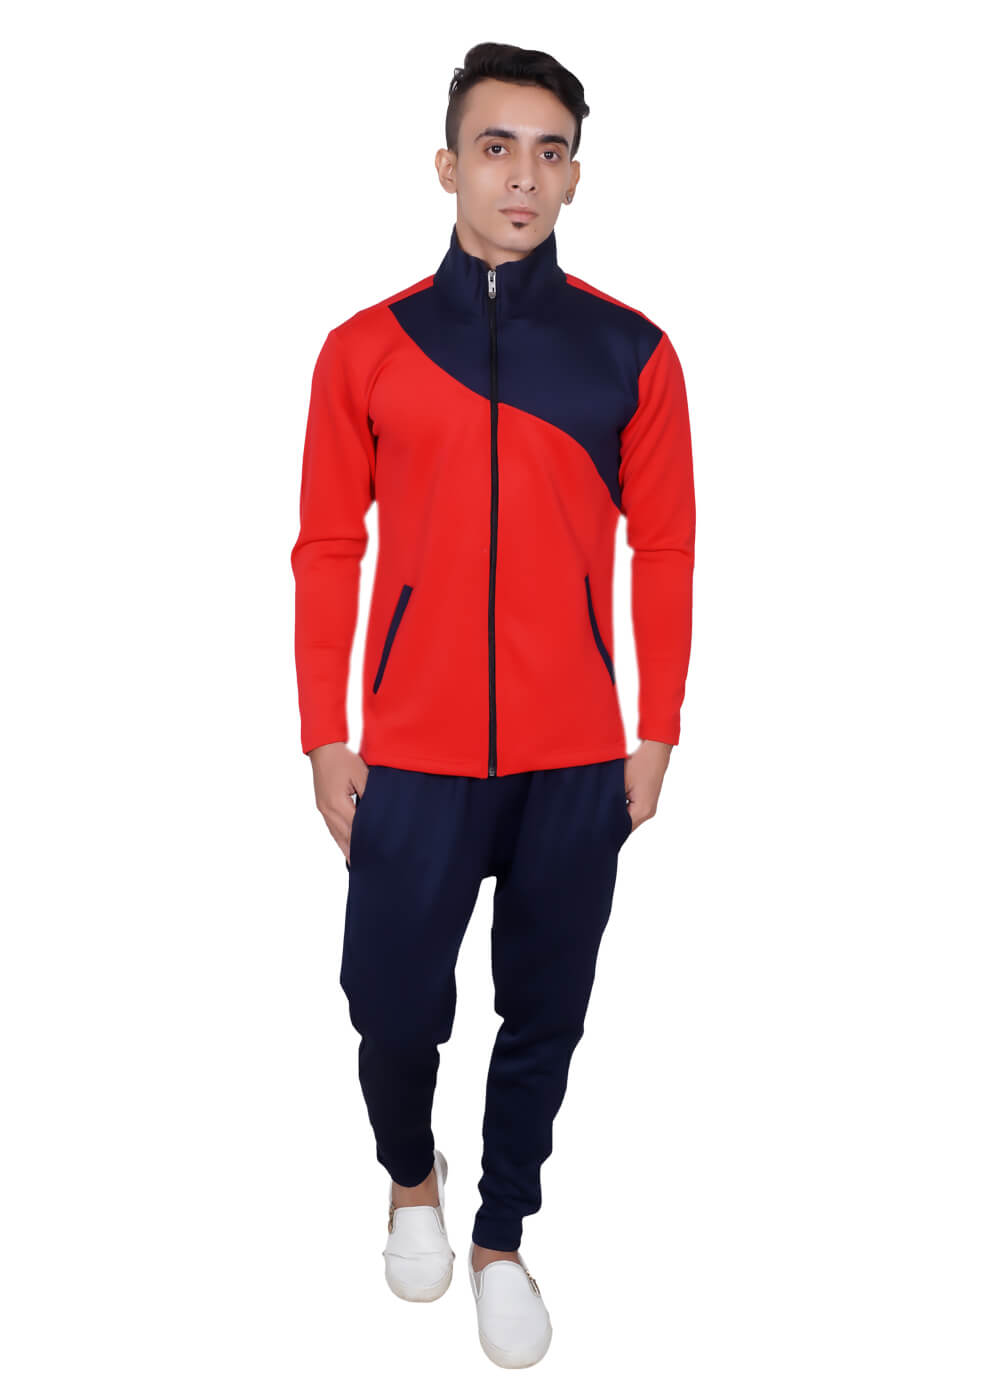 Cheap Tracksuits Manufacturers in United-states-of-america